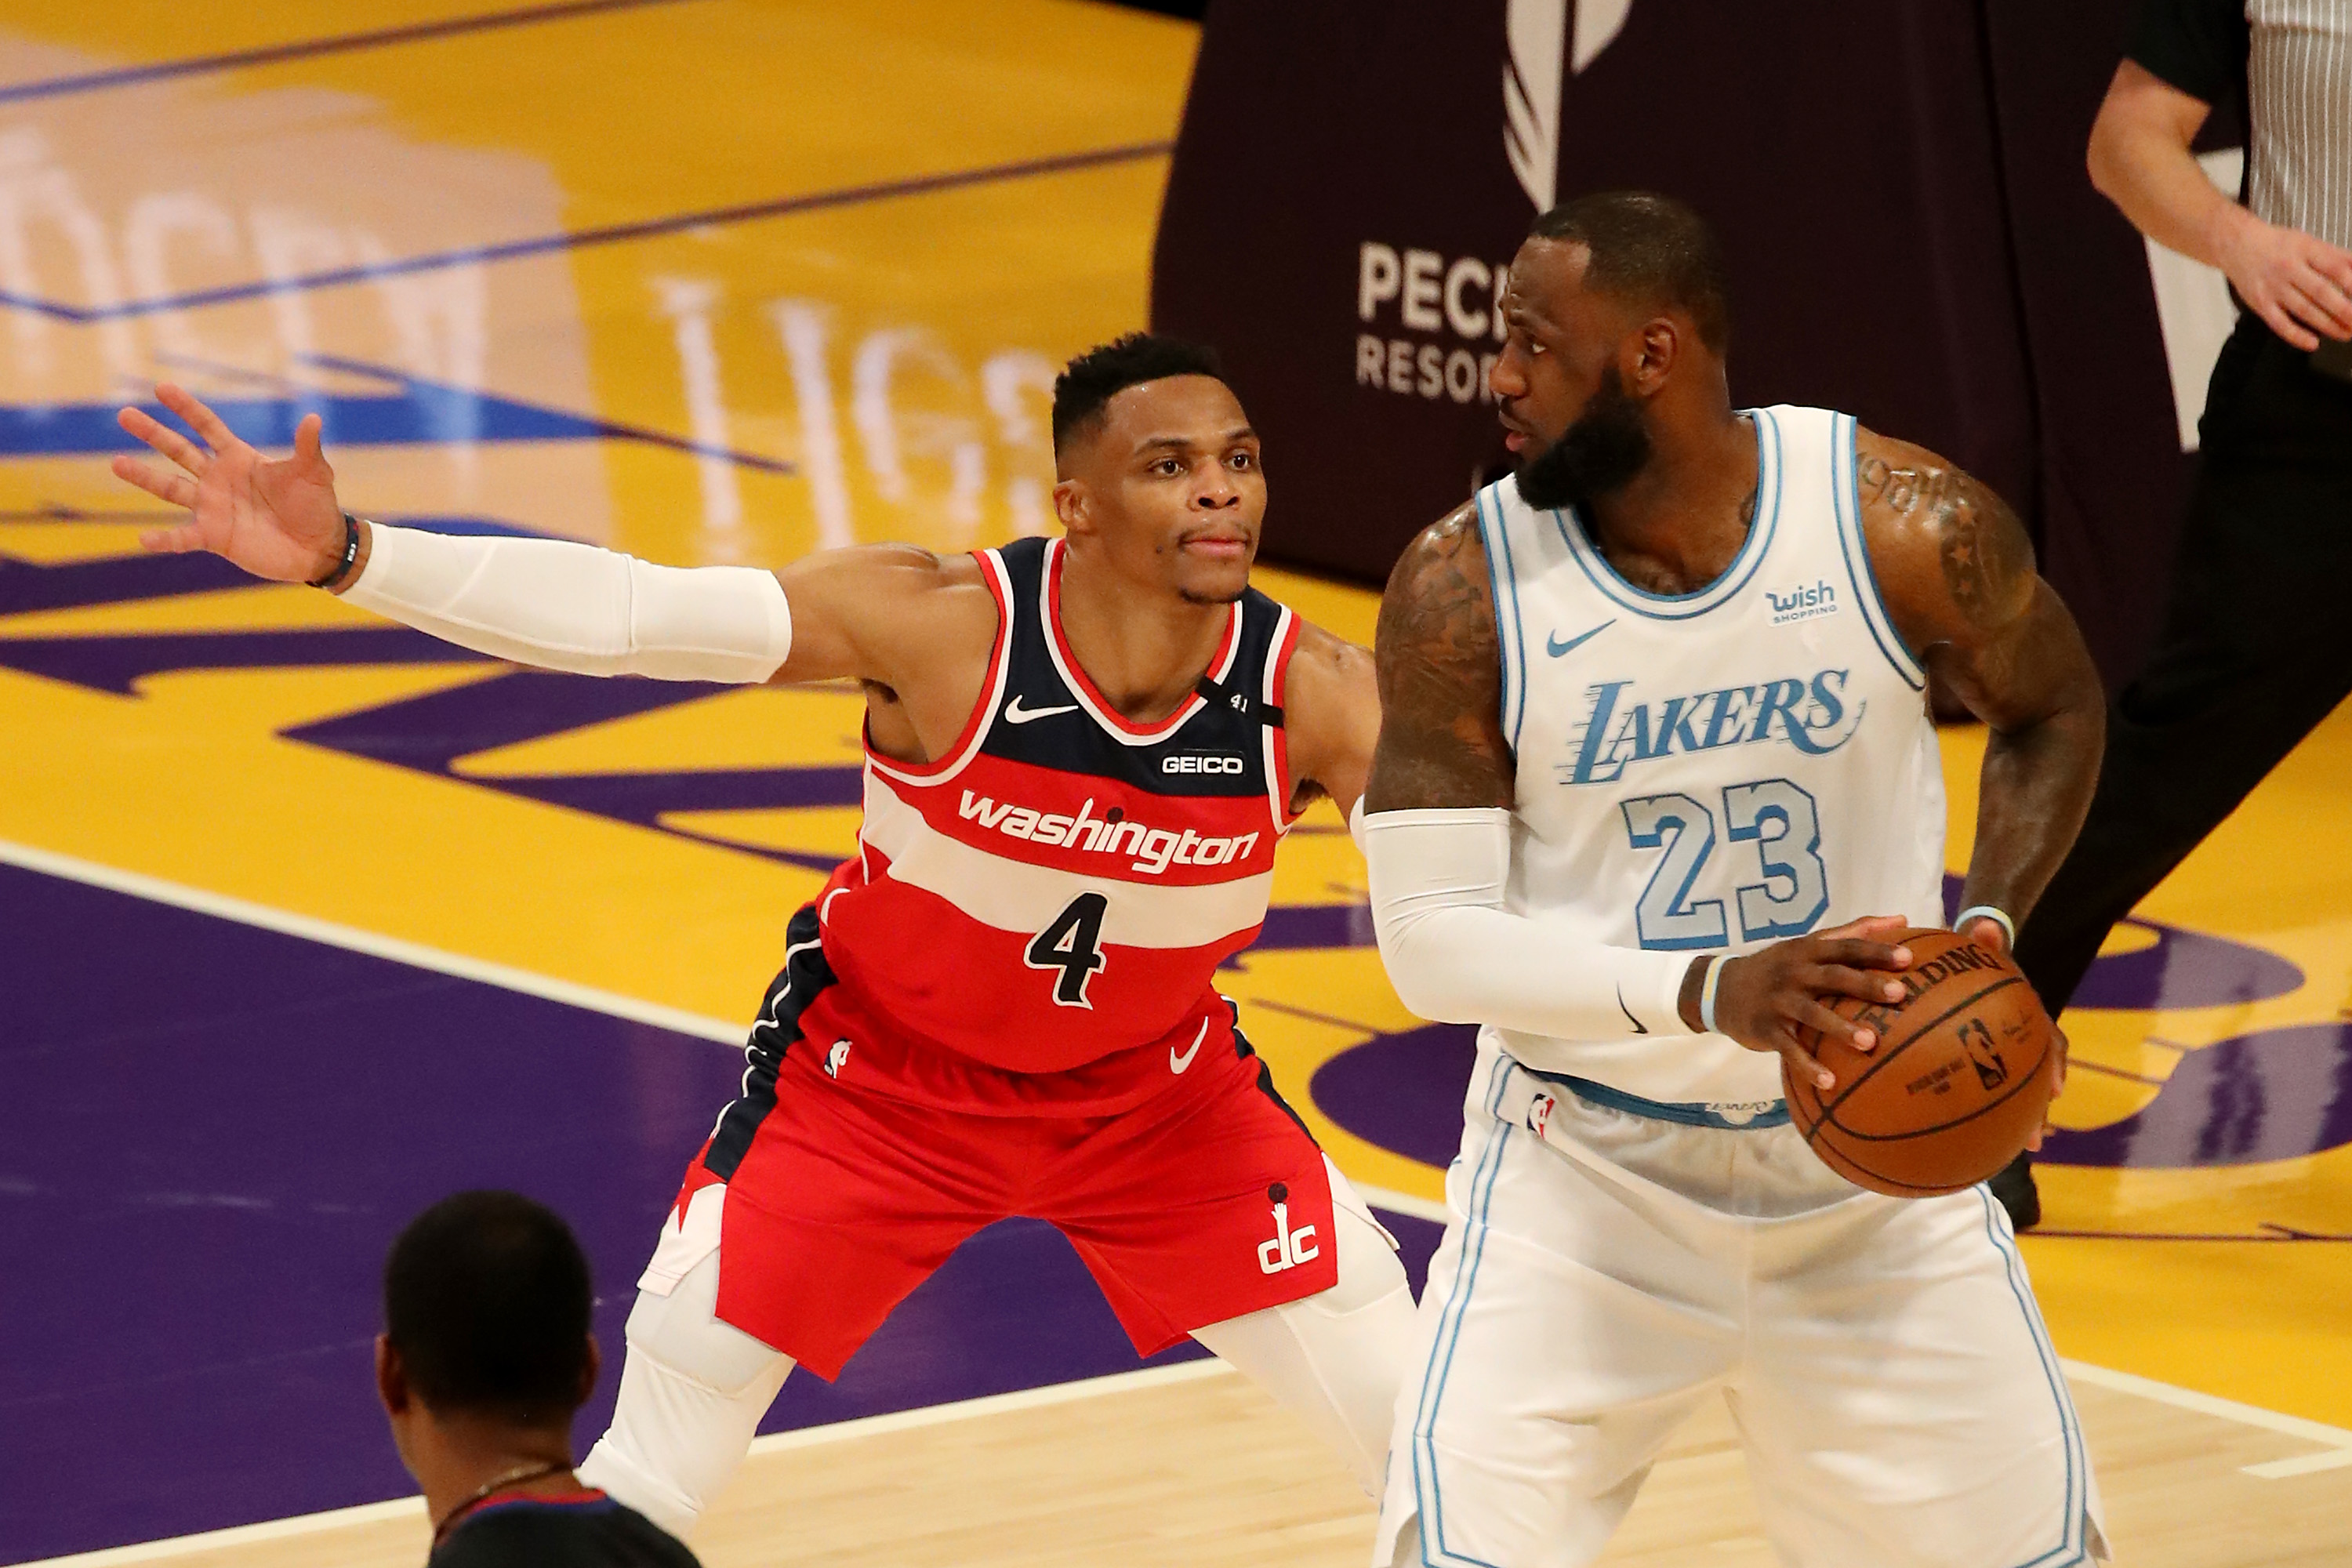 Russell Westbrook #4 of the Washington Wizards guards LeBron James #23 of the Los Angeles Lakers during the fourth quarter at Staples Center on February 22, 2021 in Los Angeles, California.